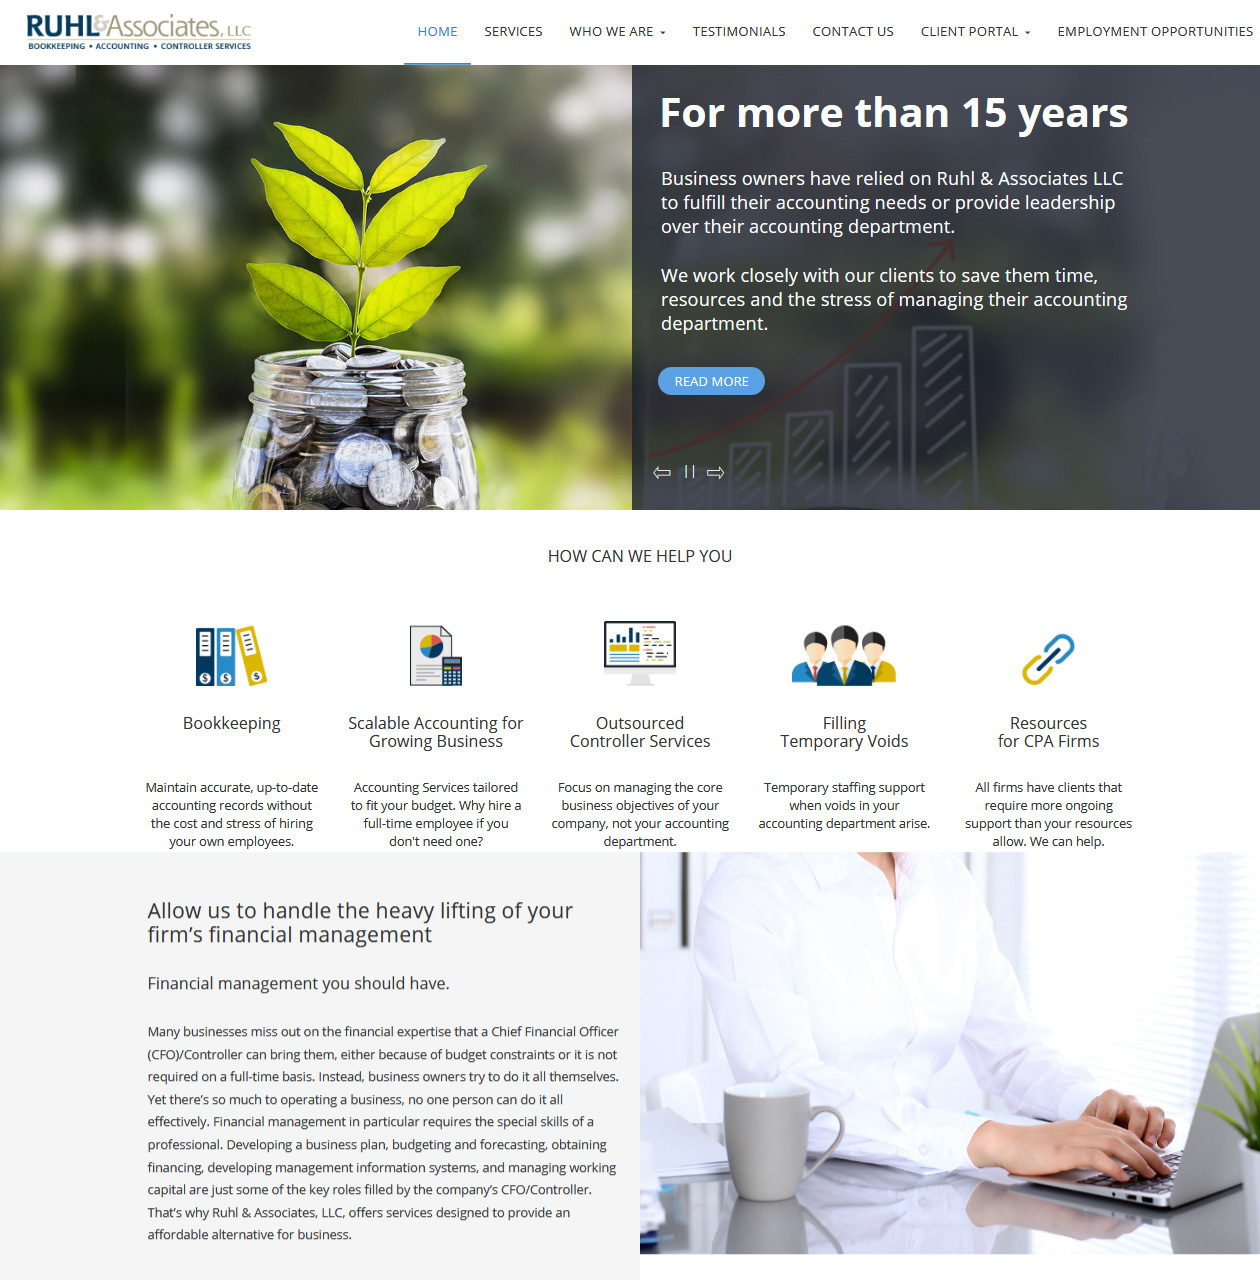 RUHL & Associates Accountants website design